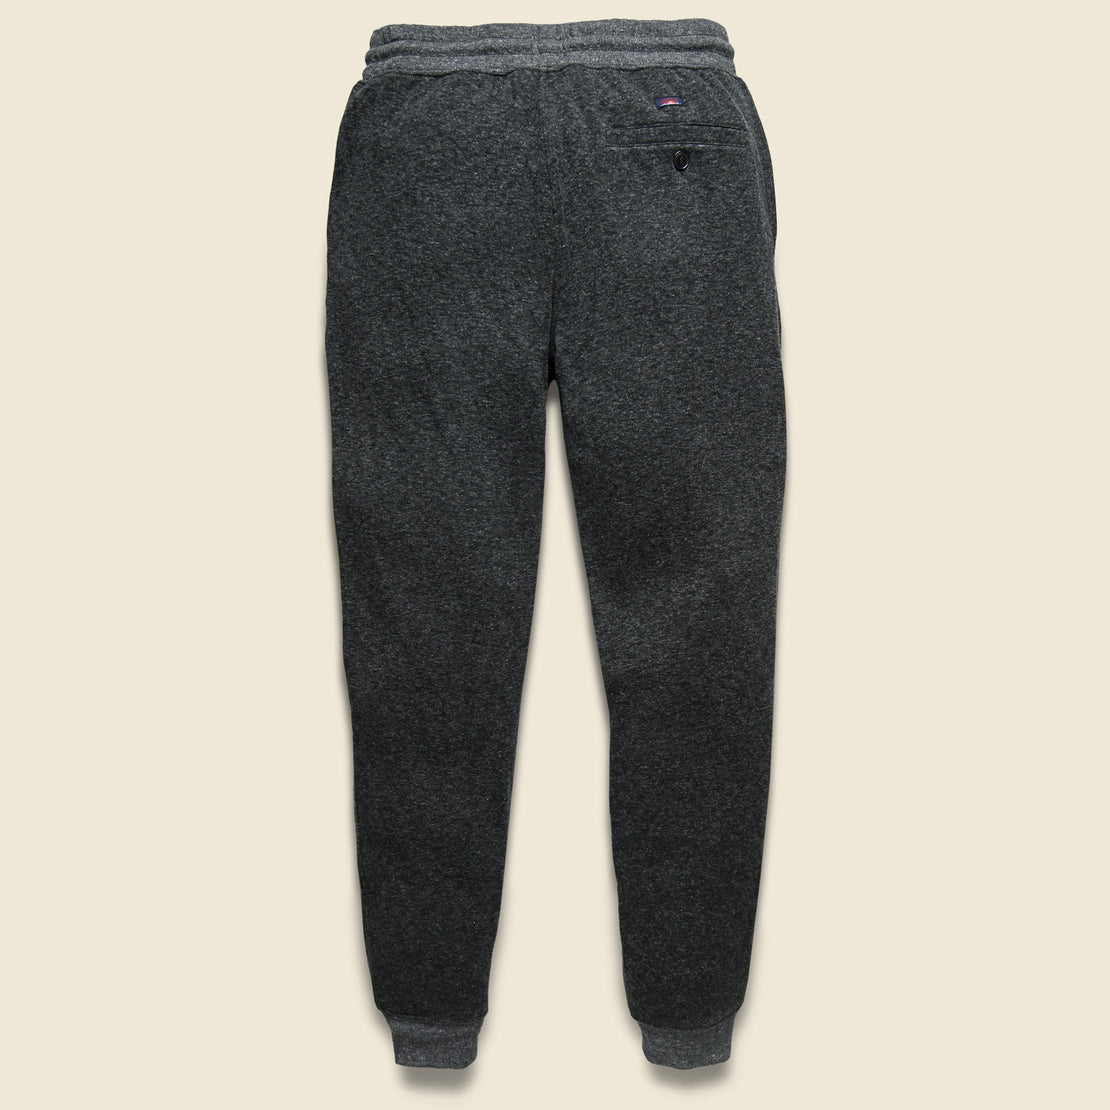 Dual Knit Sweatpant - Washed Black